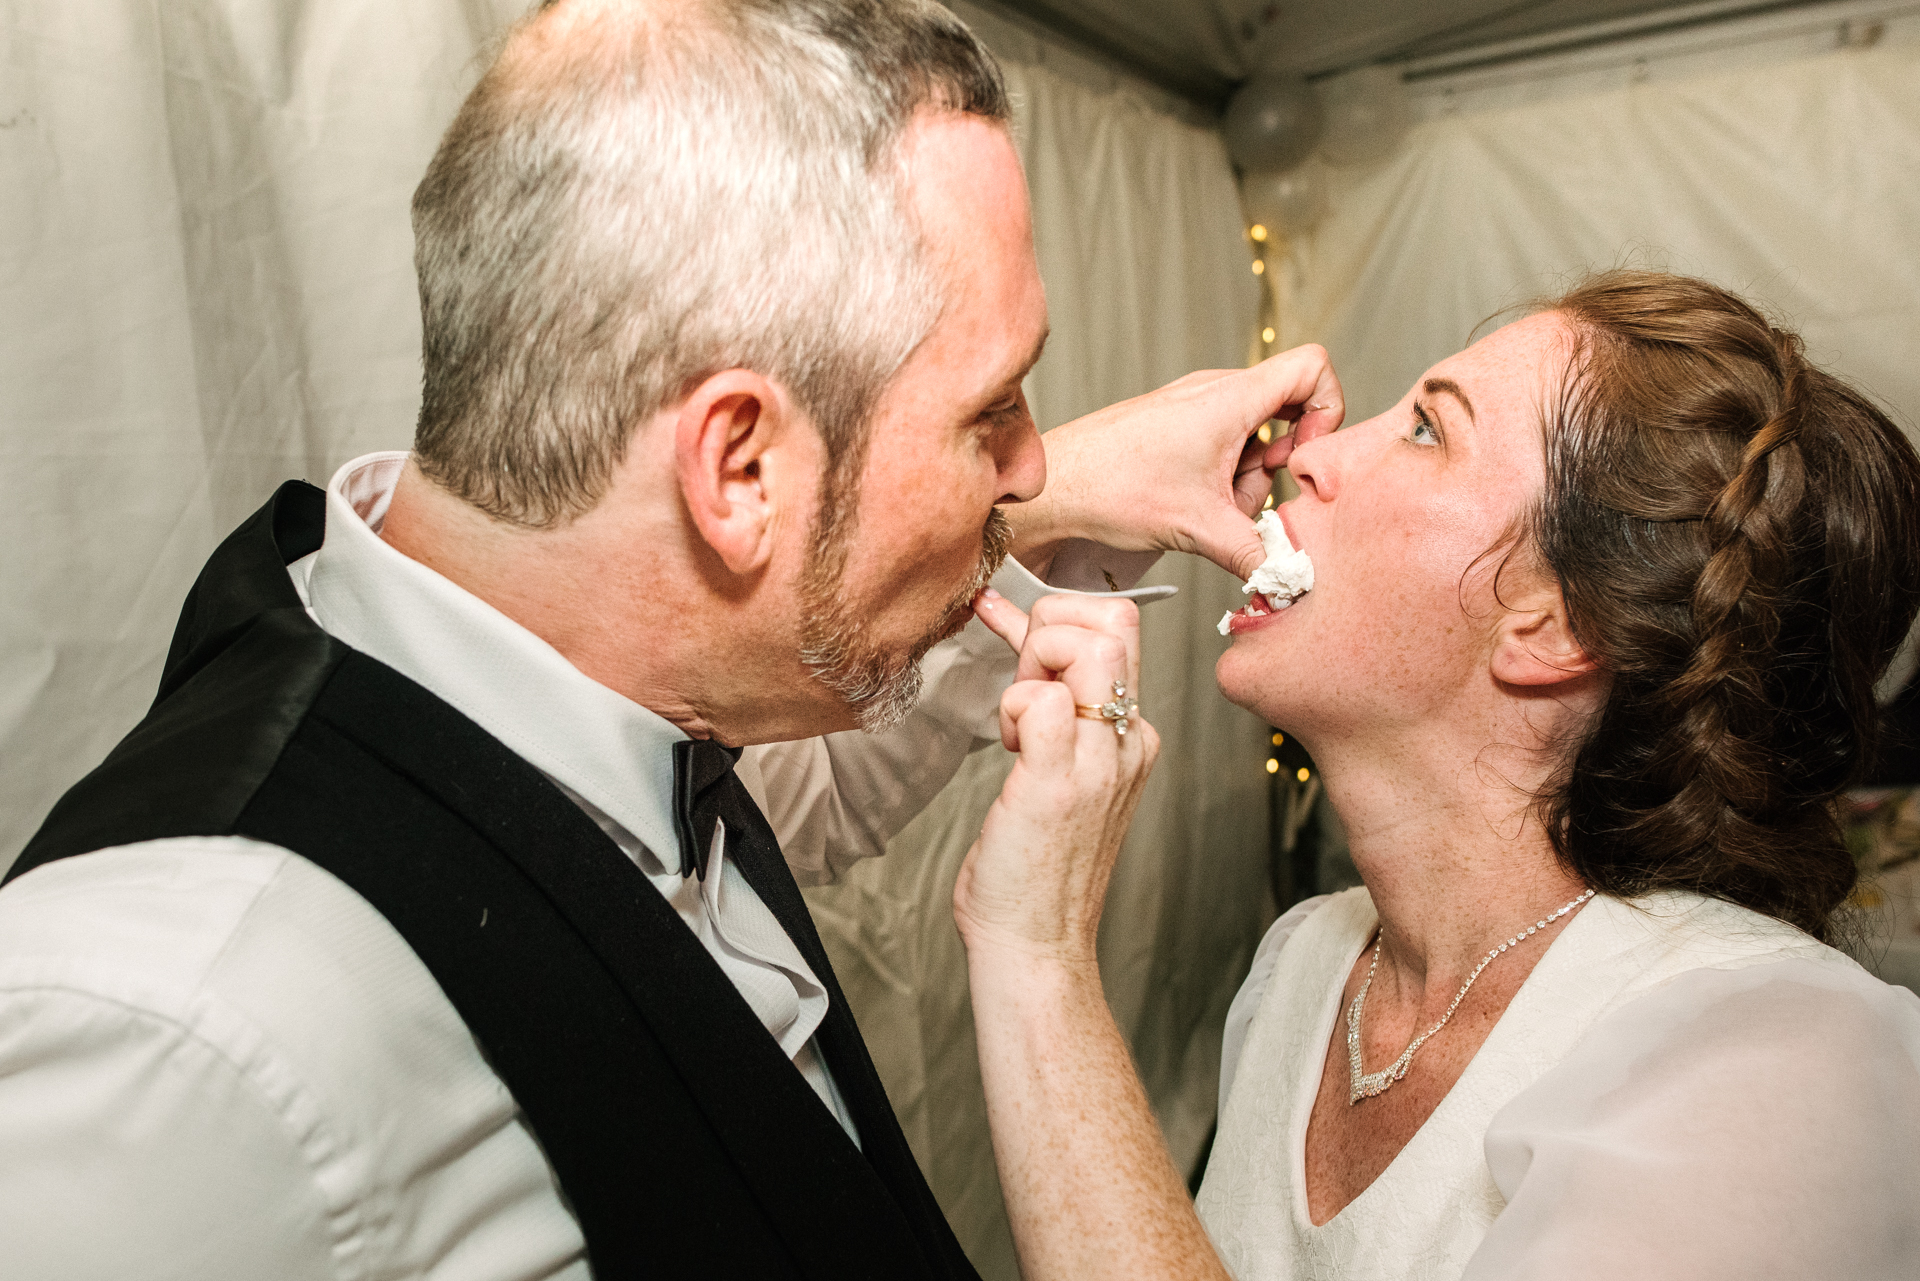 Ottawa, Backyard Wedding Image from Kanata | it's time for a slice of cake... Or a thumb-full